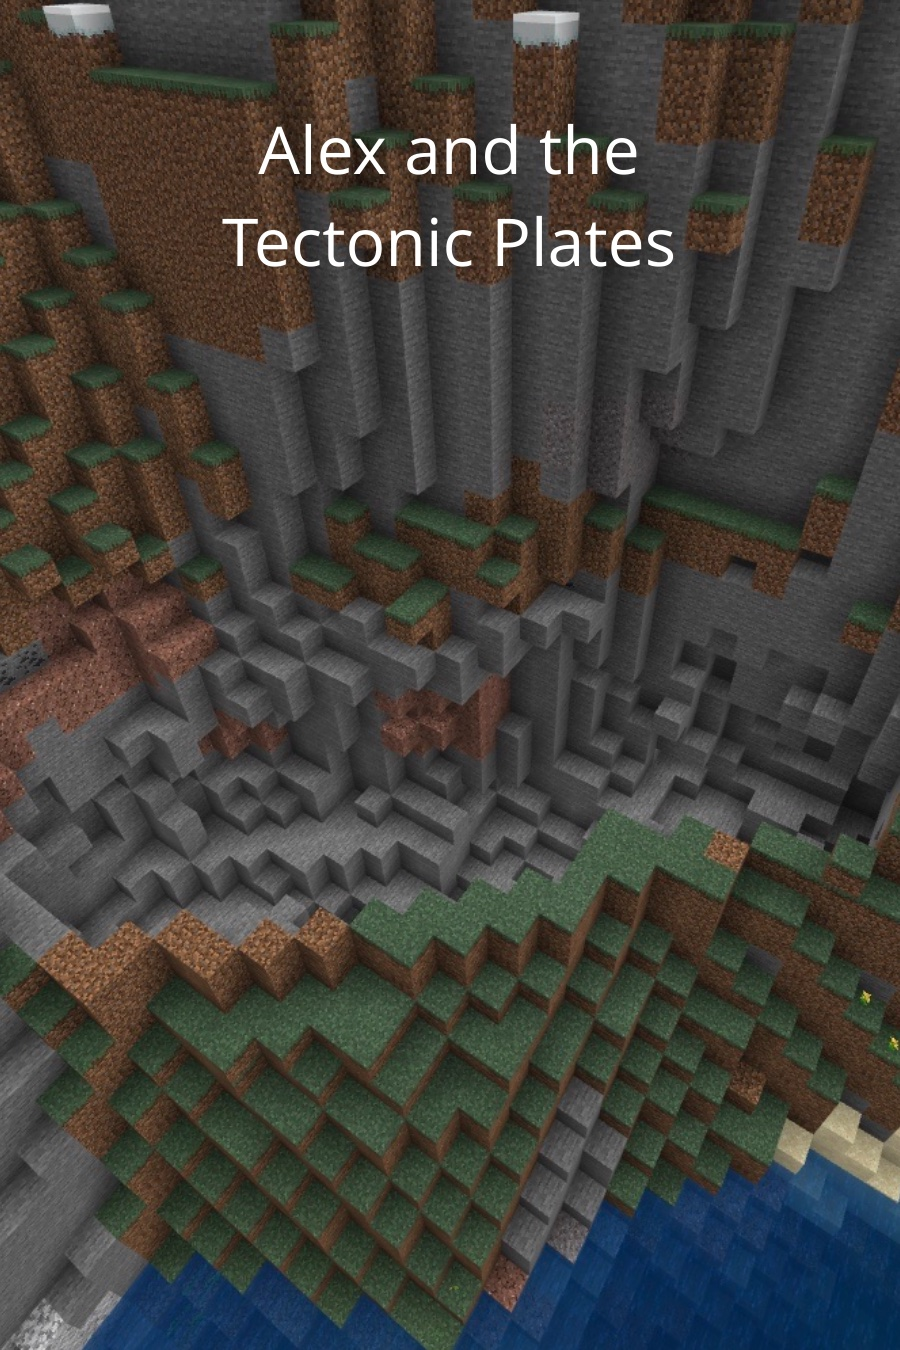 Alex and the Tectonic Plates